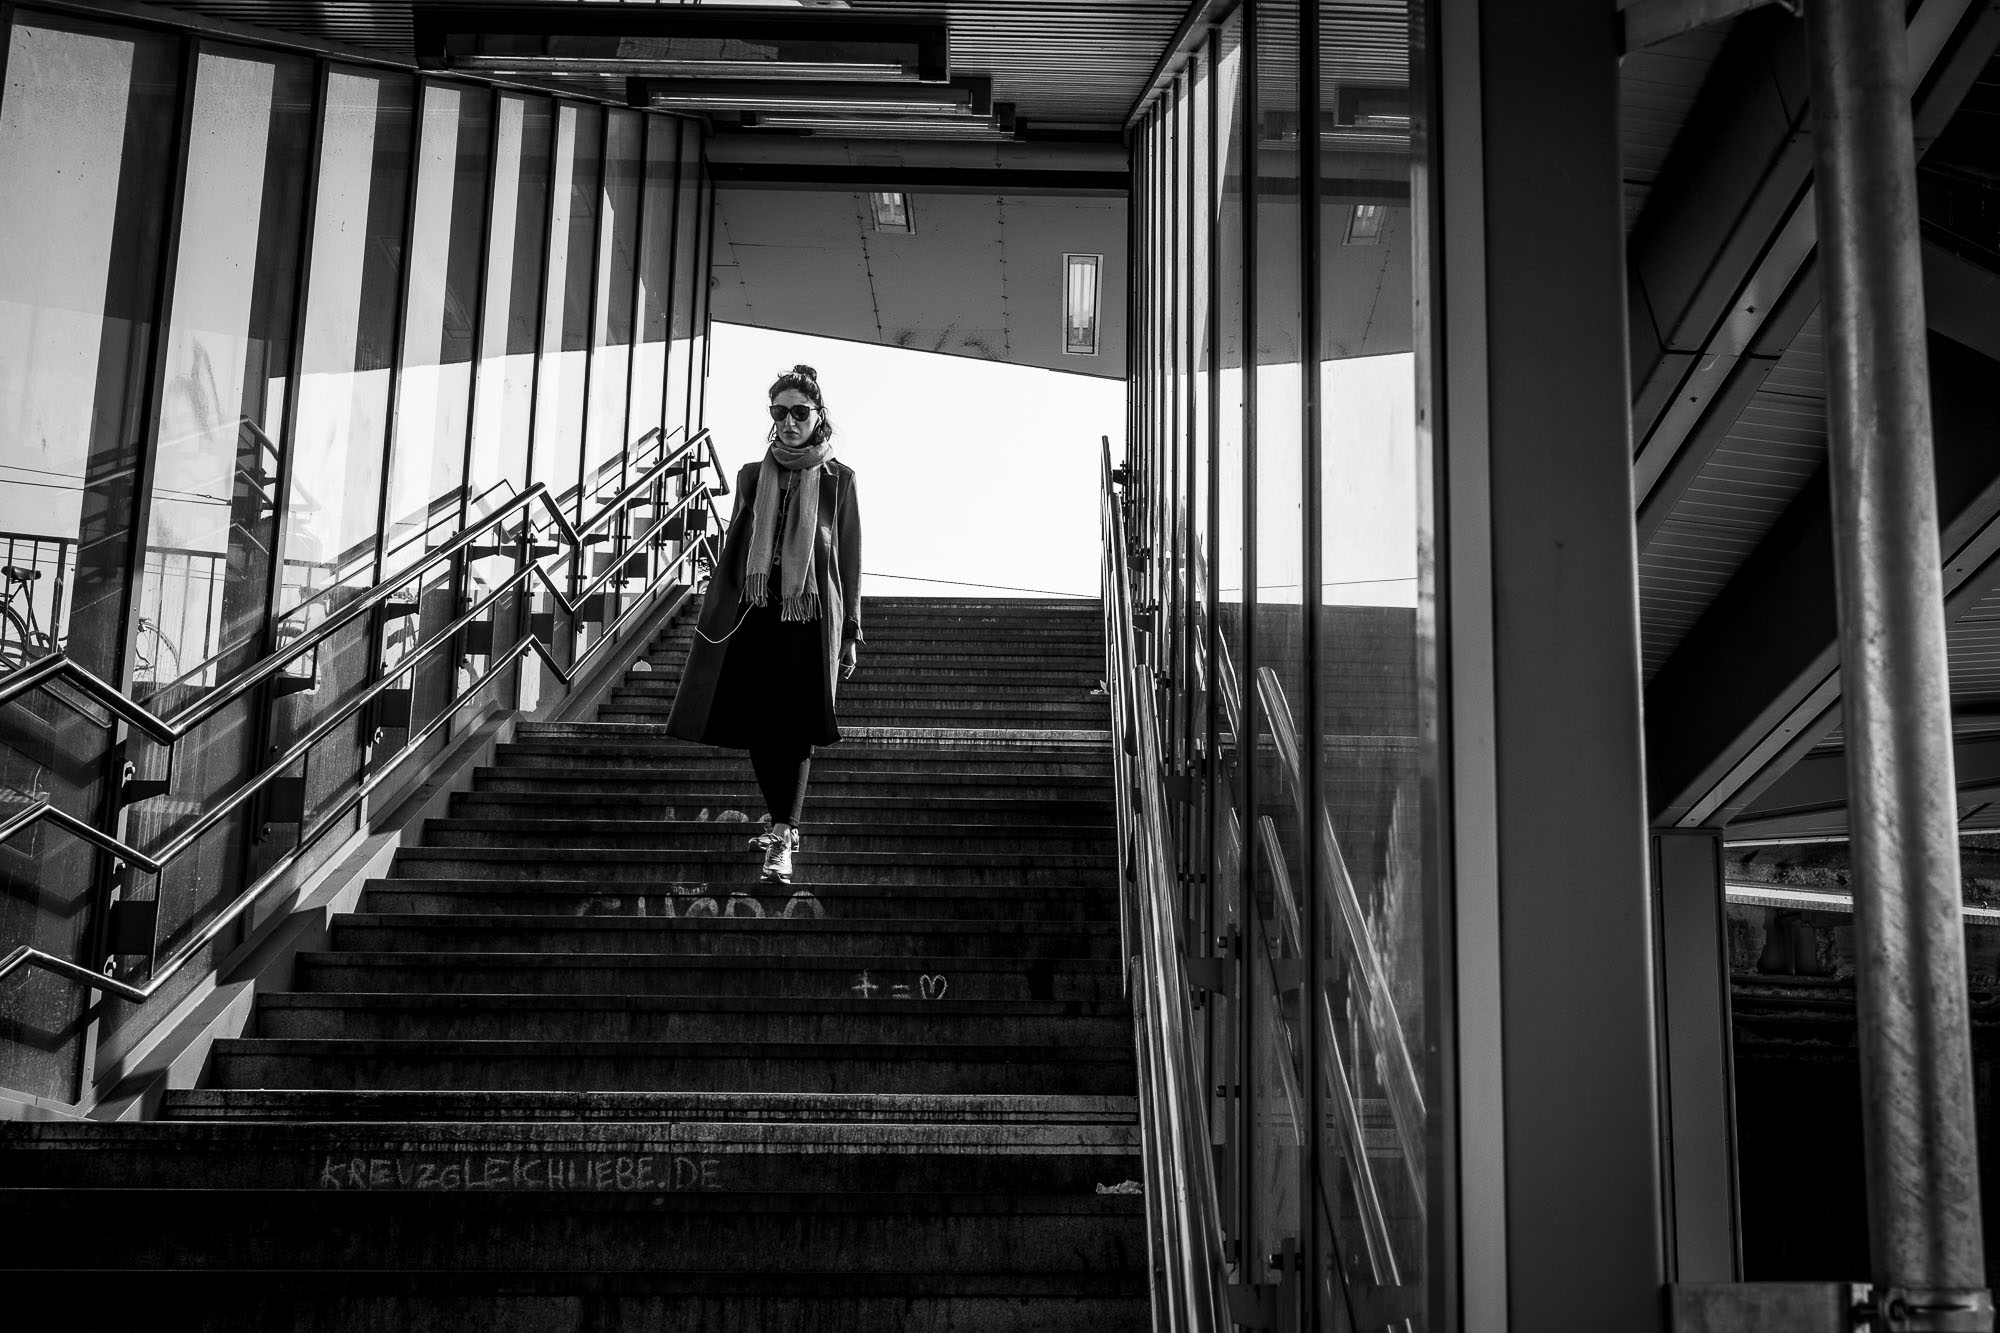 A woman walking down the stairs to the train platform